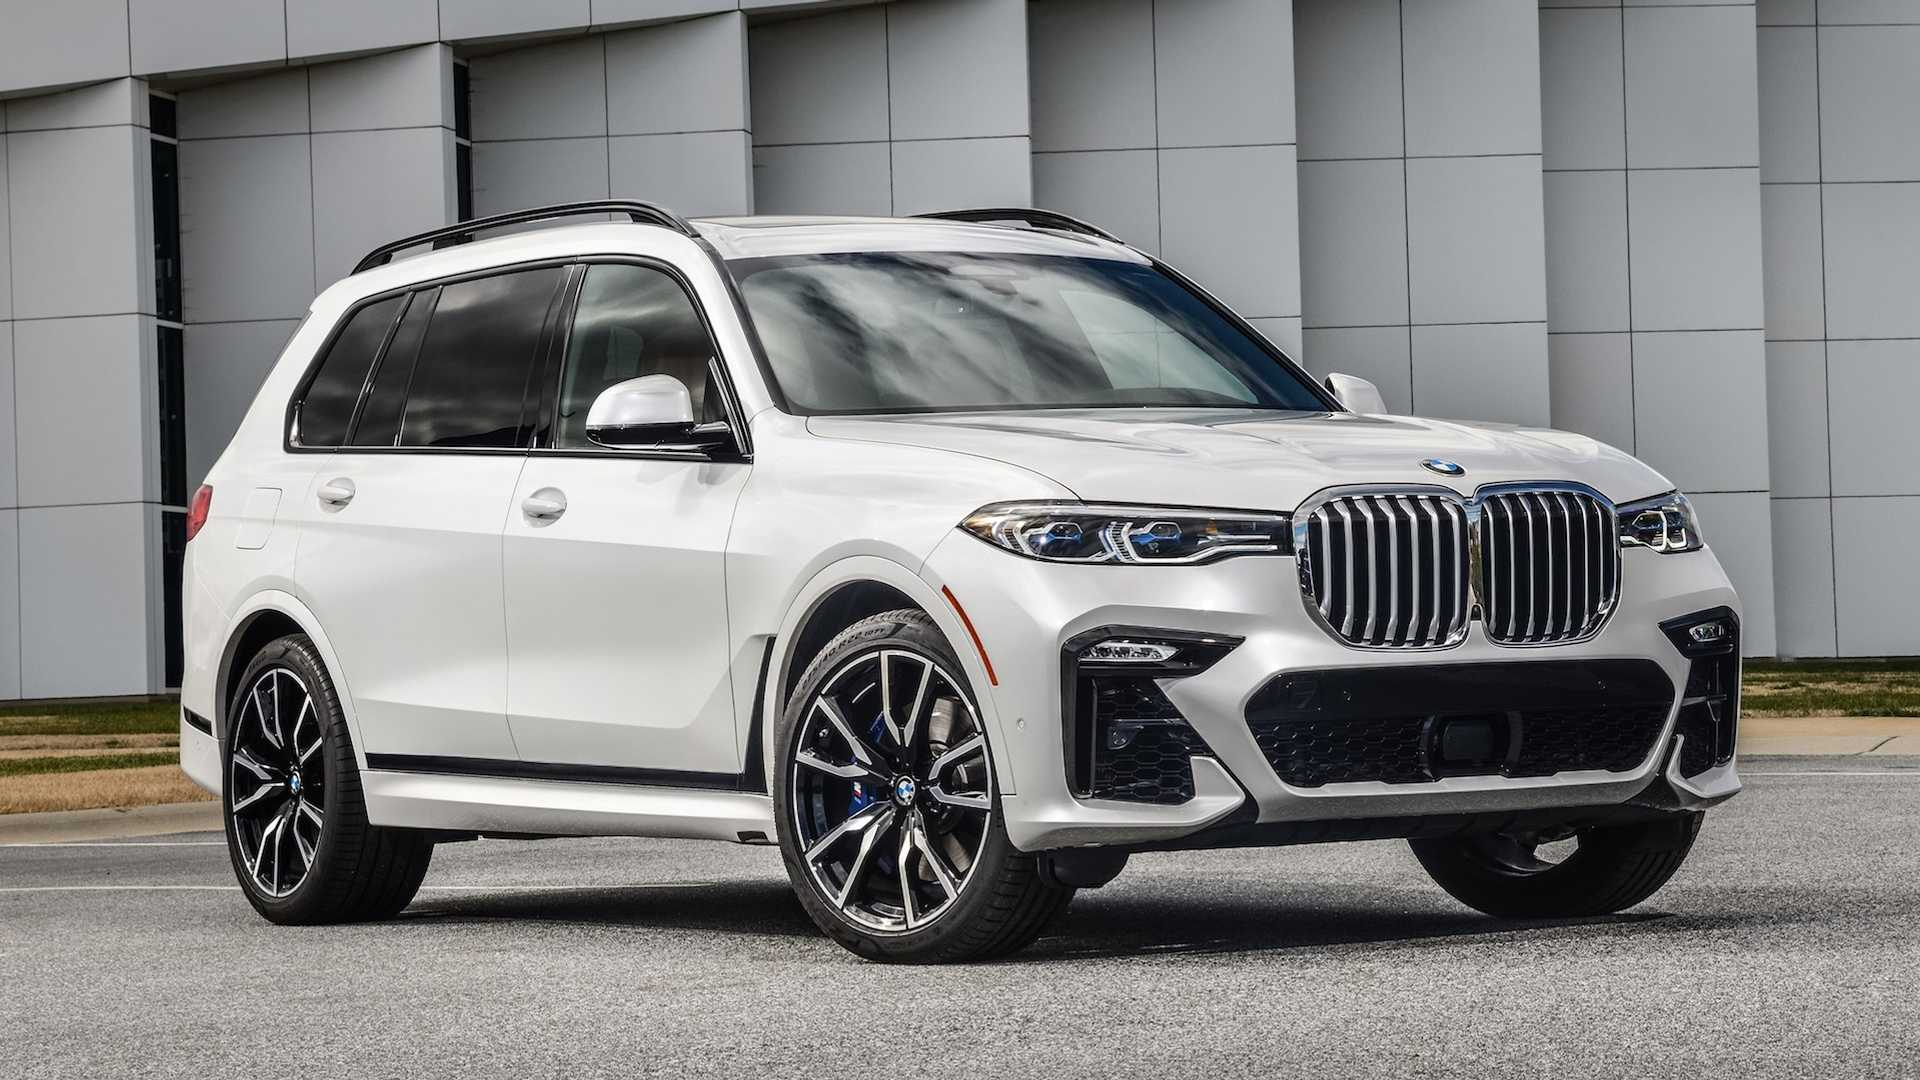 Meet the All-New BMW X7 | Nalley BMW of Decatur